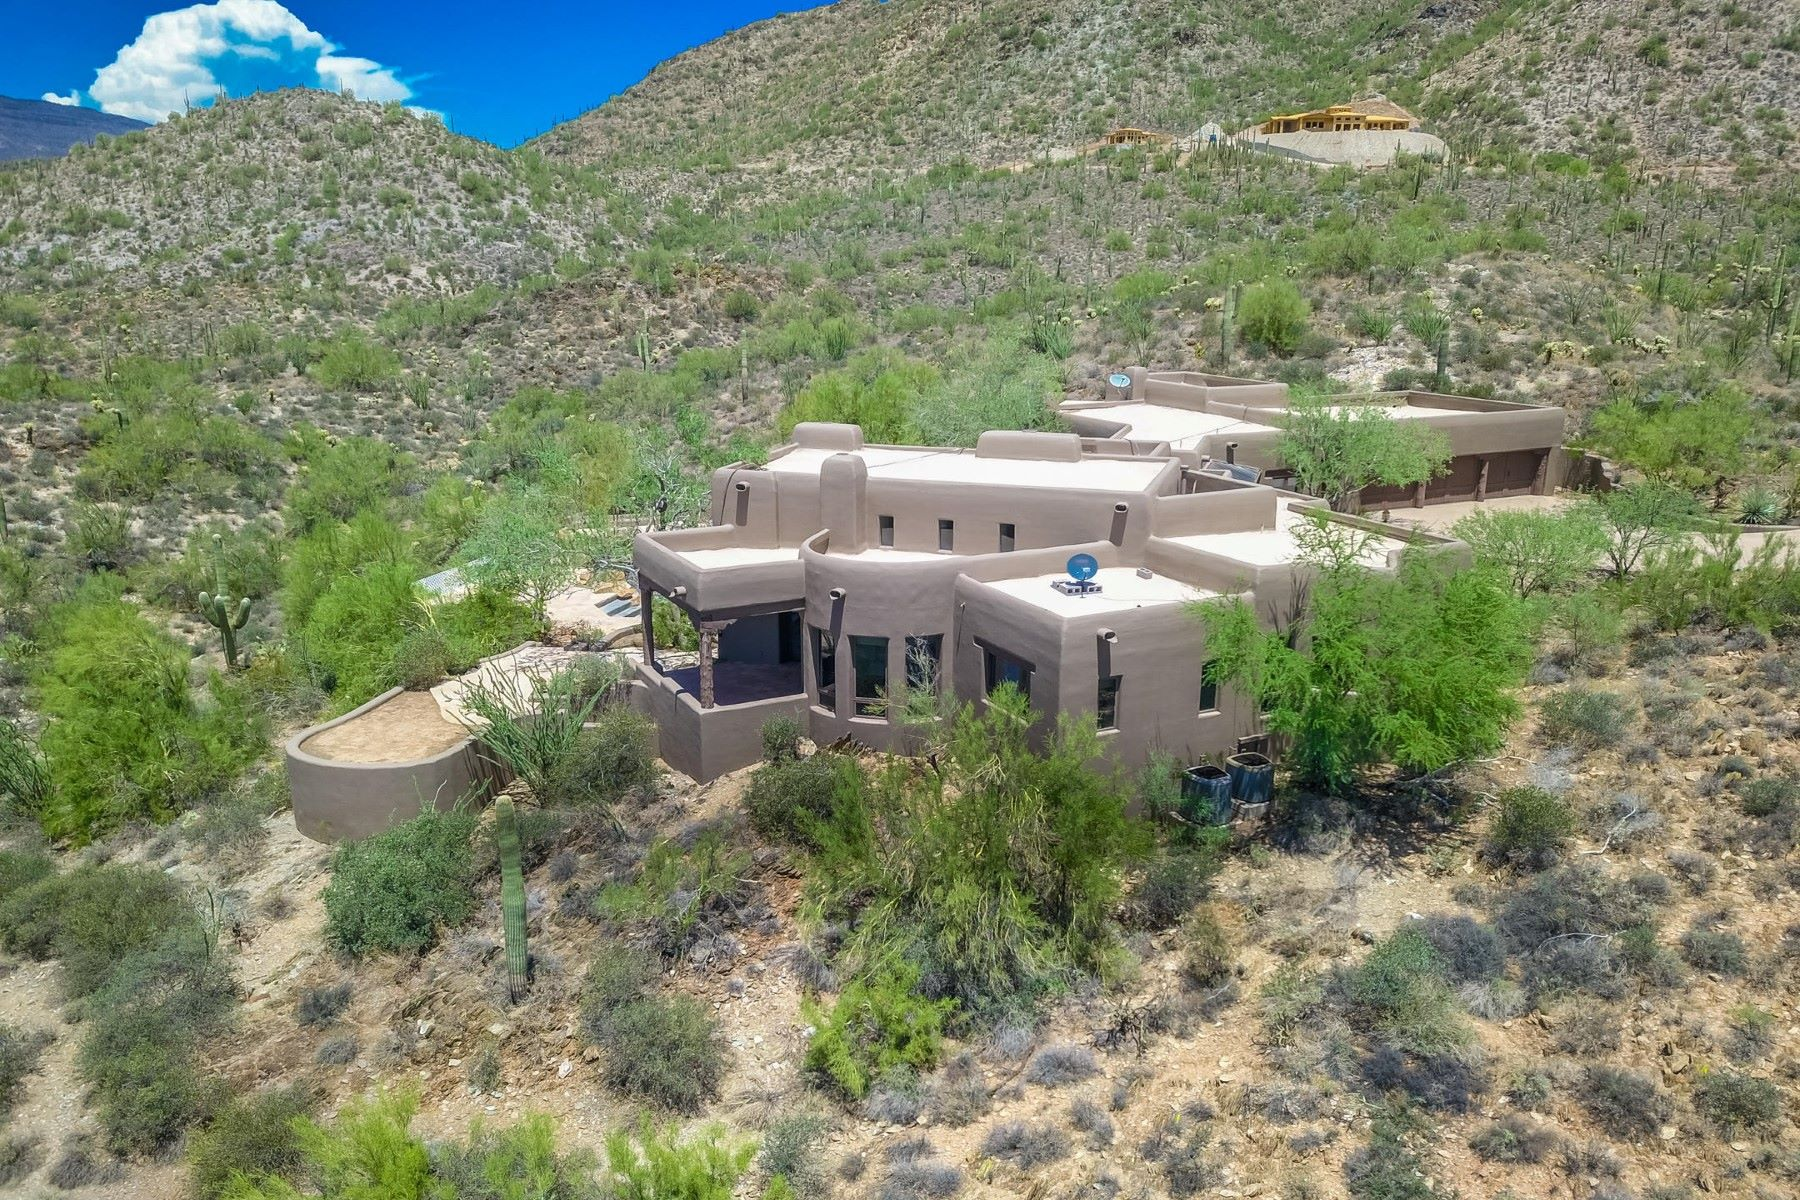 Single Family Homes for Active at Spectacular Privately Gated Equestrian Property 43438 N 68TH ST Cave Creek, Arizona 85331 United States